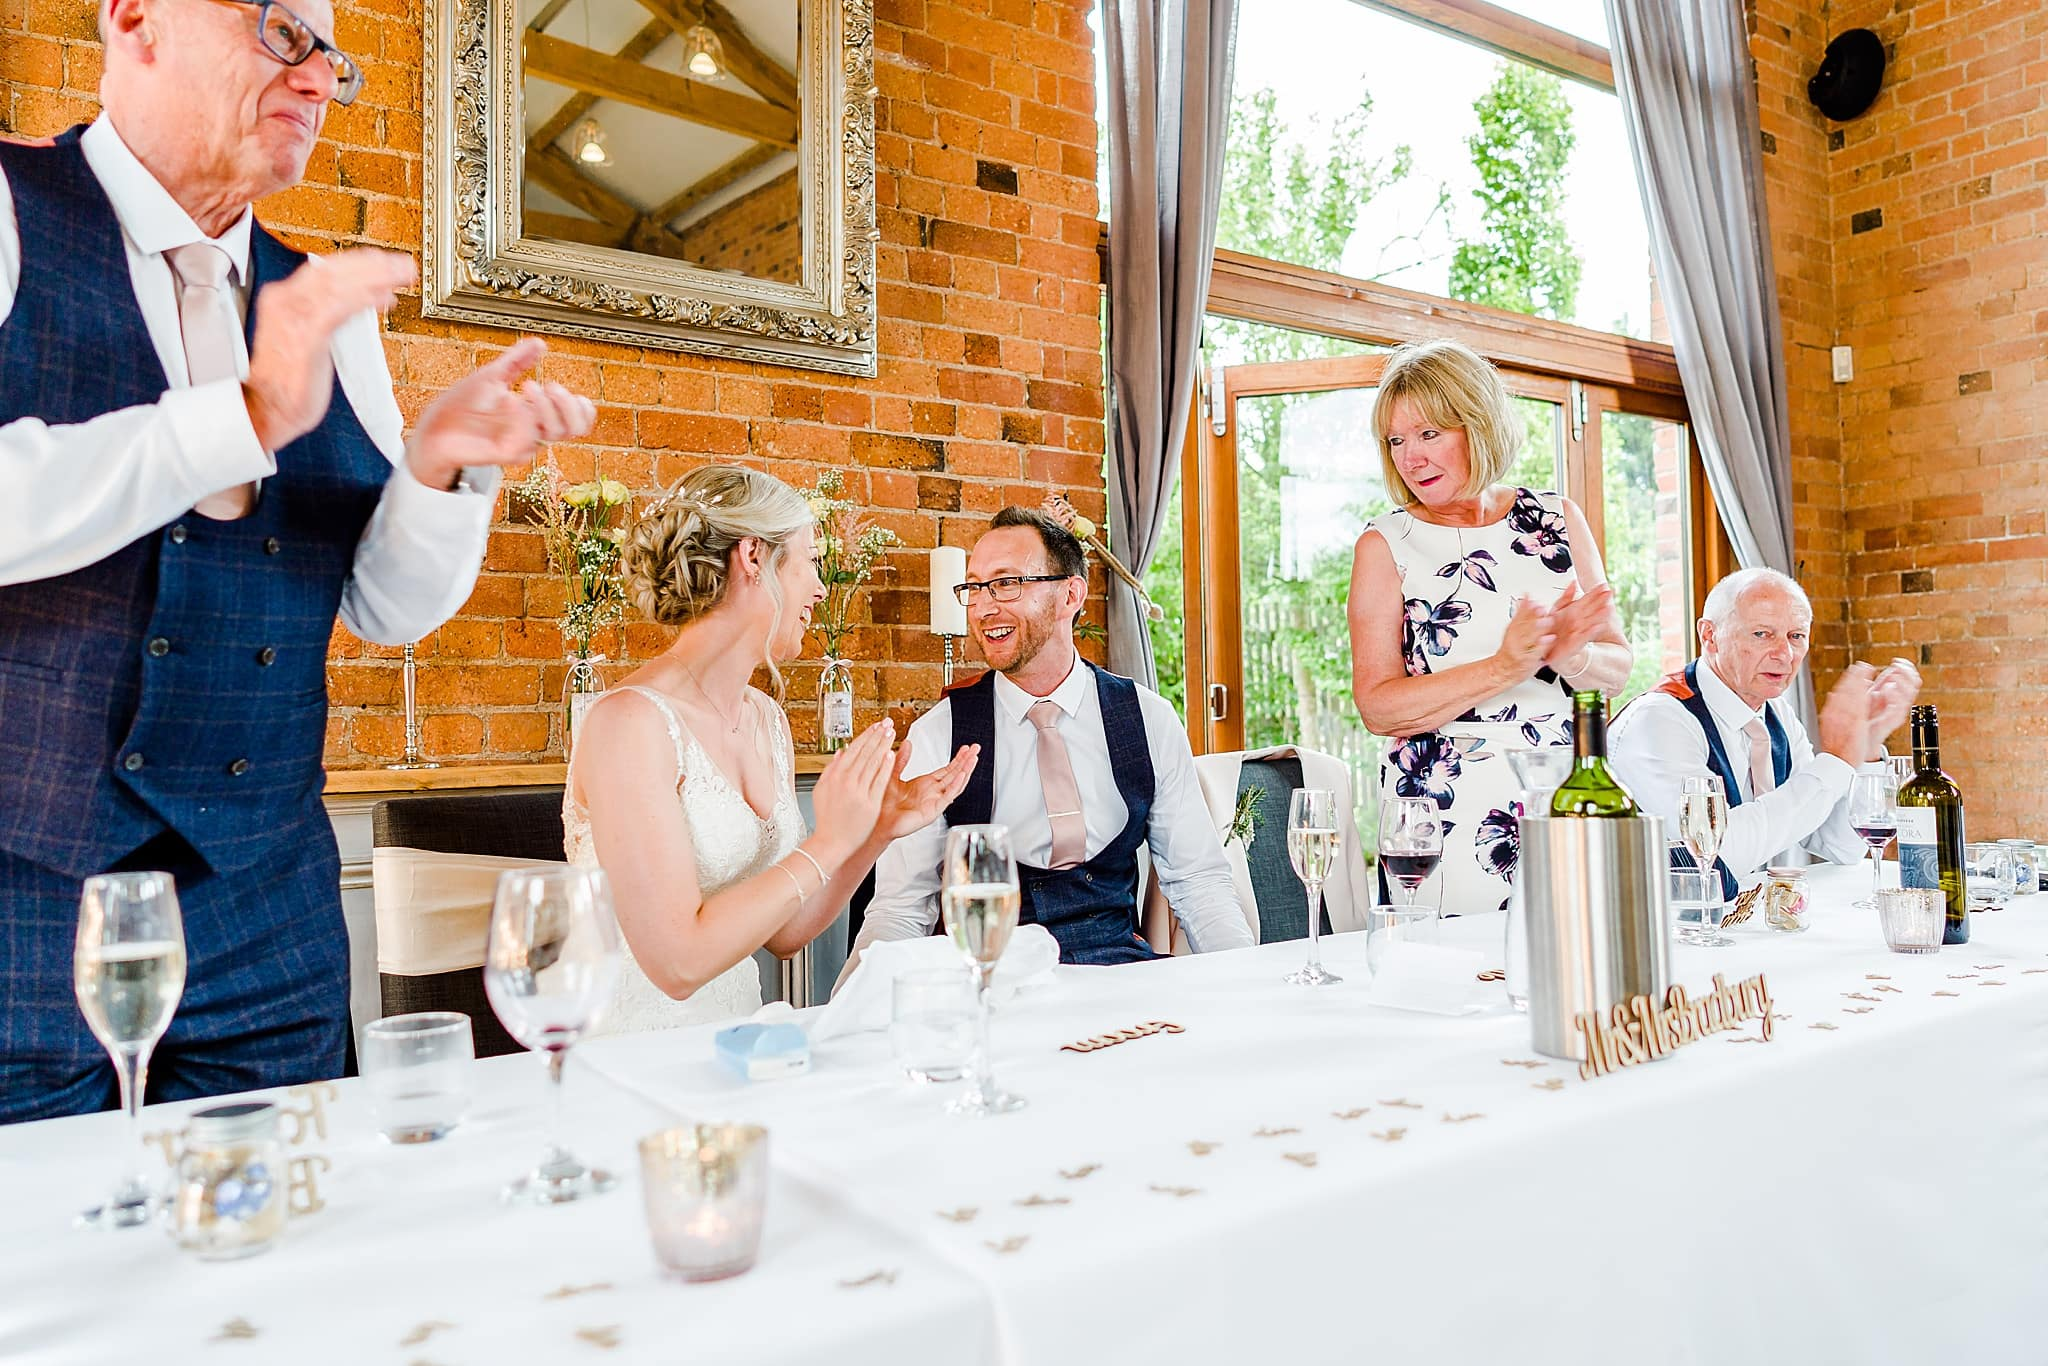 Everyone applauds the groom after he finishes his wedding speech at Carriage Hall